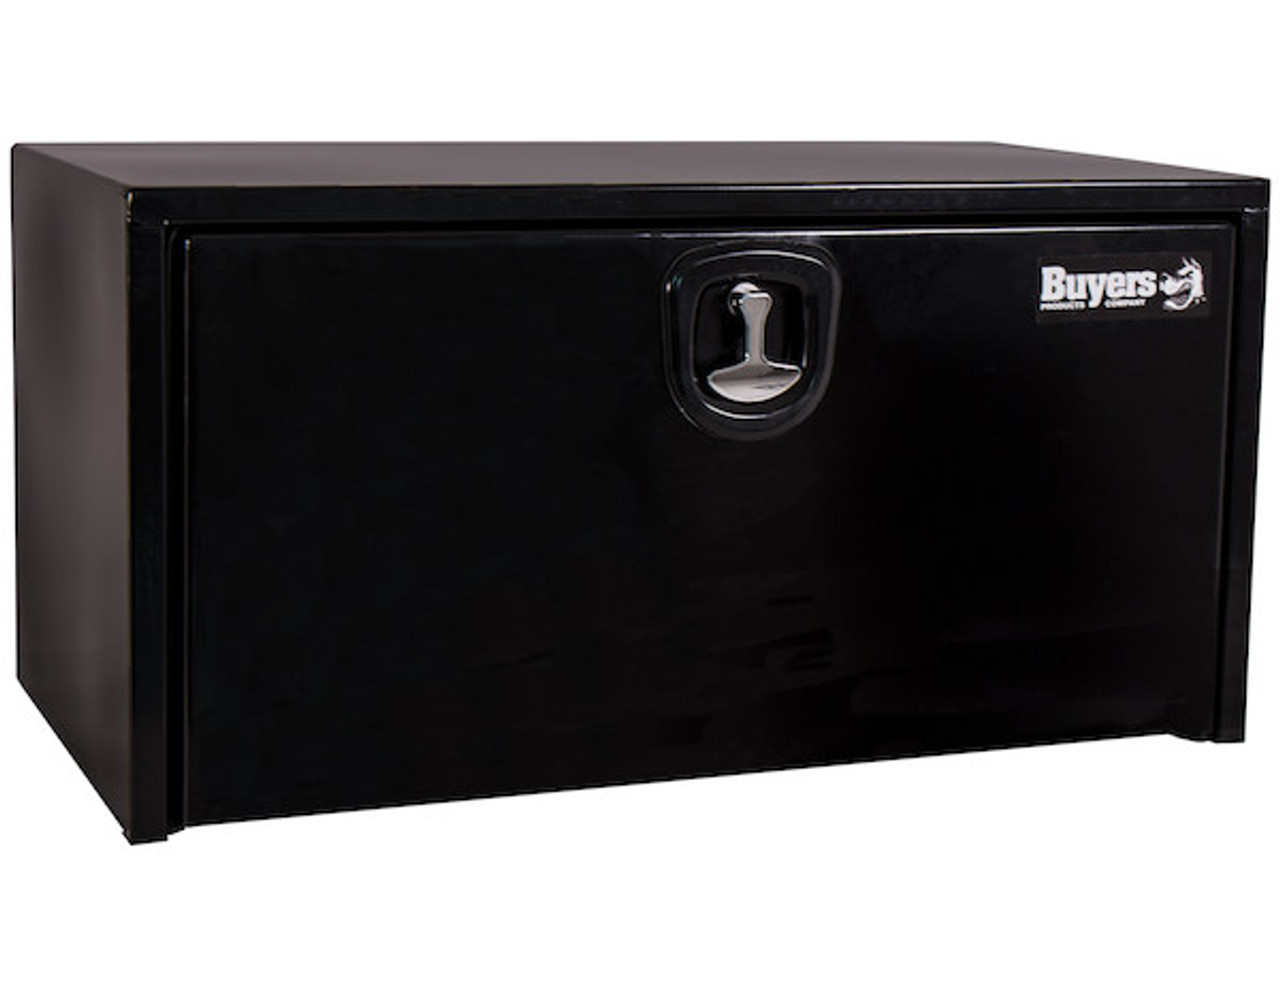 """1734300 BUYERS PRODUCTS BLACK STEEL UNDERBODY TRUCK TOOLBOX WITH 3-POINT LATCH 24""""Hx24""""Dx24""""W"""